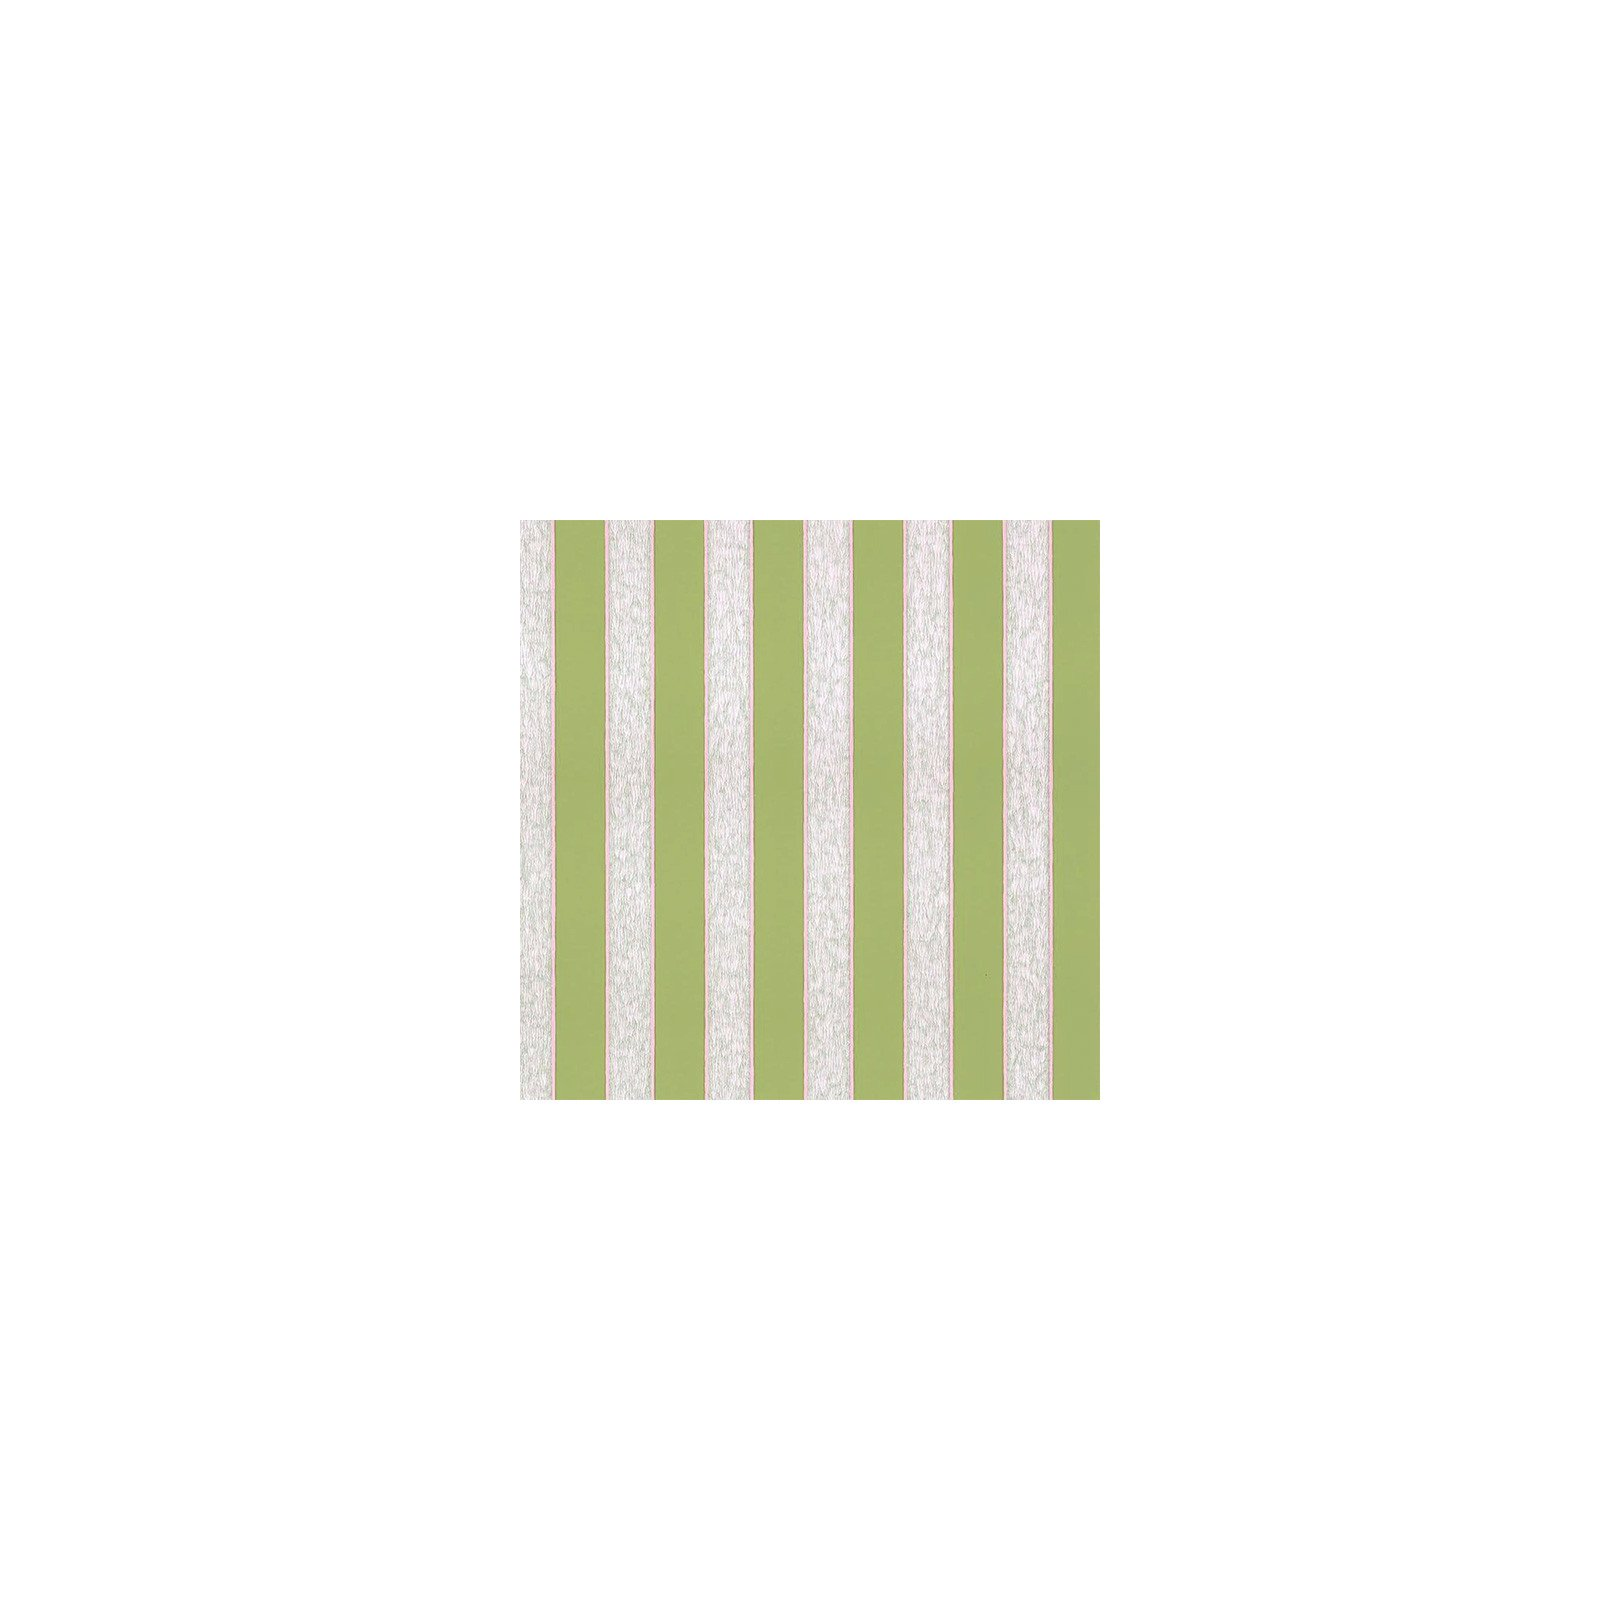 papier peint vert rayures classiques inspiration 18 me afdc oxford stripe au fil des couleurs. Black Bedroom Furniture Sets. Home Design Ideas